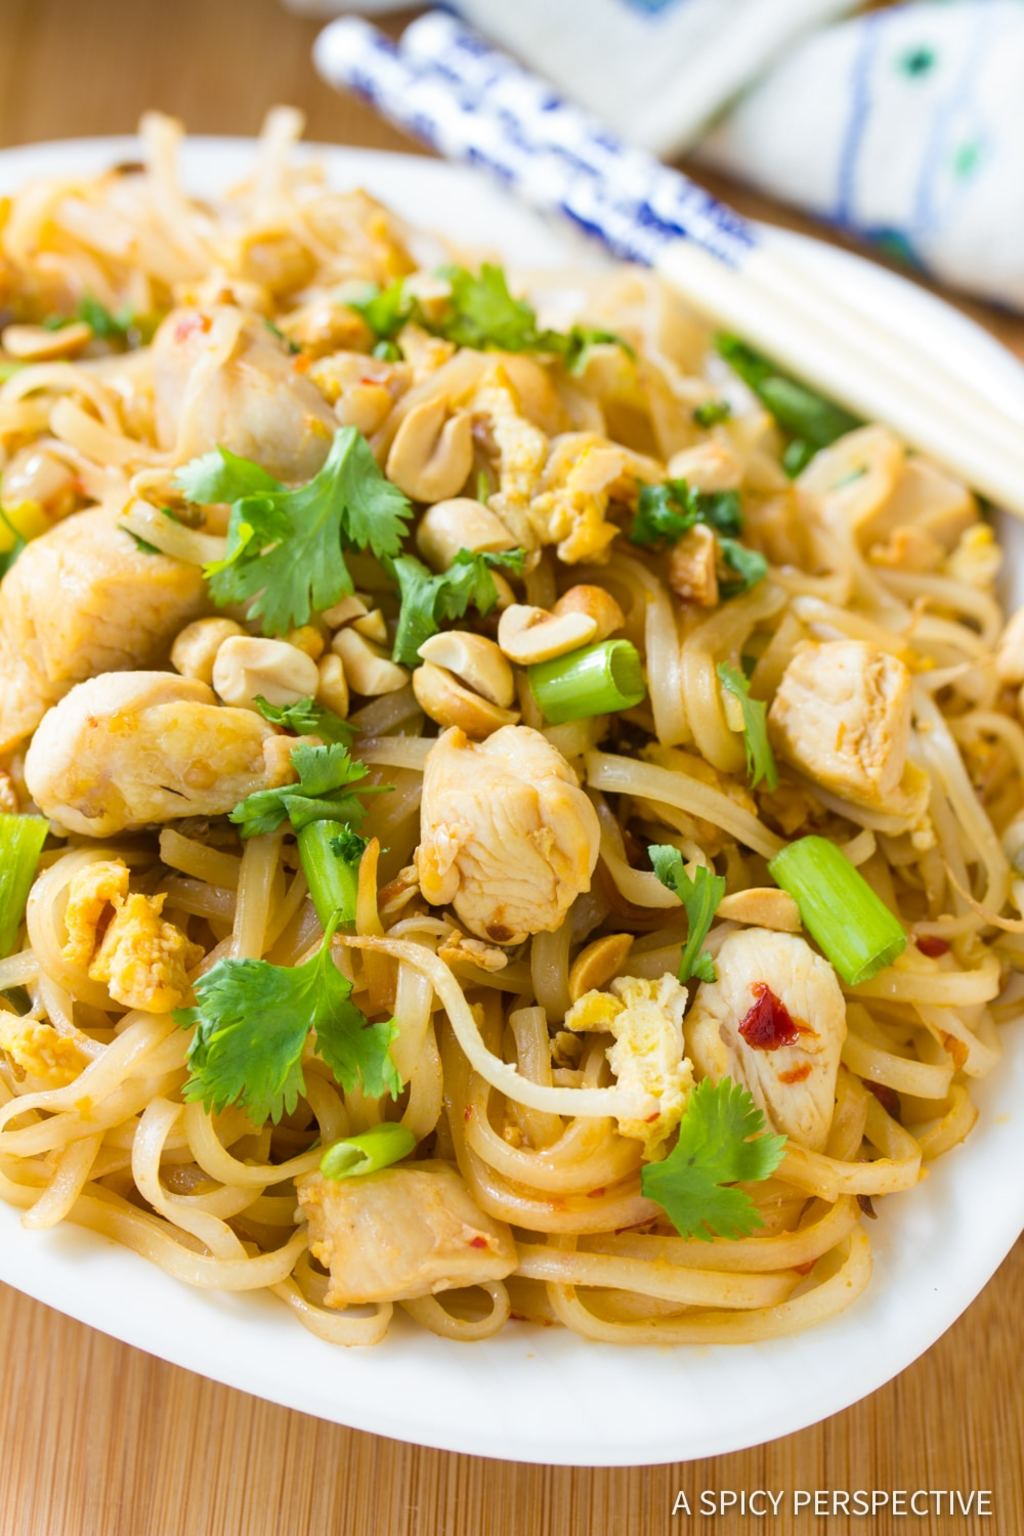 Does Pad Thai taste fishy?                                         The flavors of this dish are cent... via Tangos